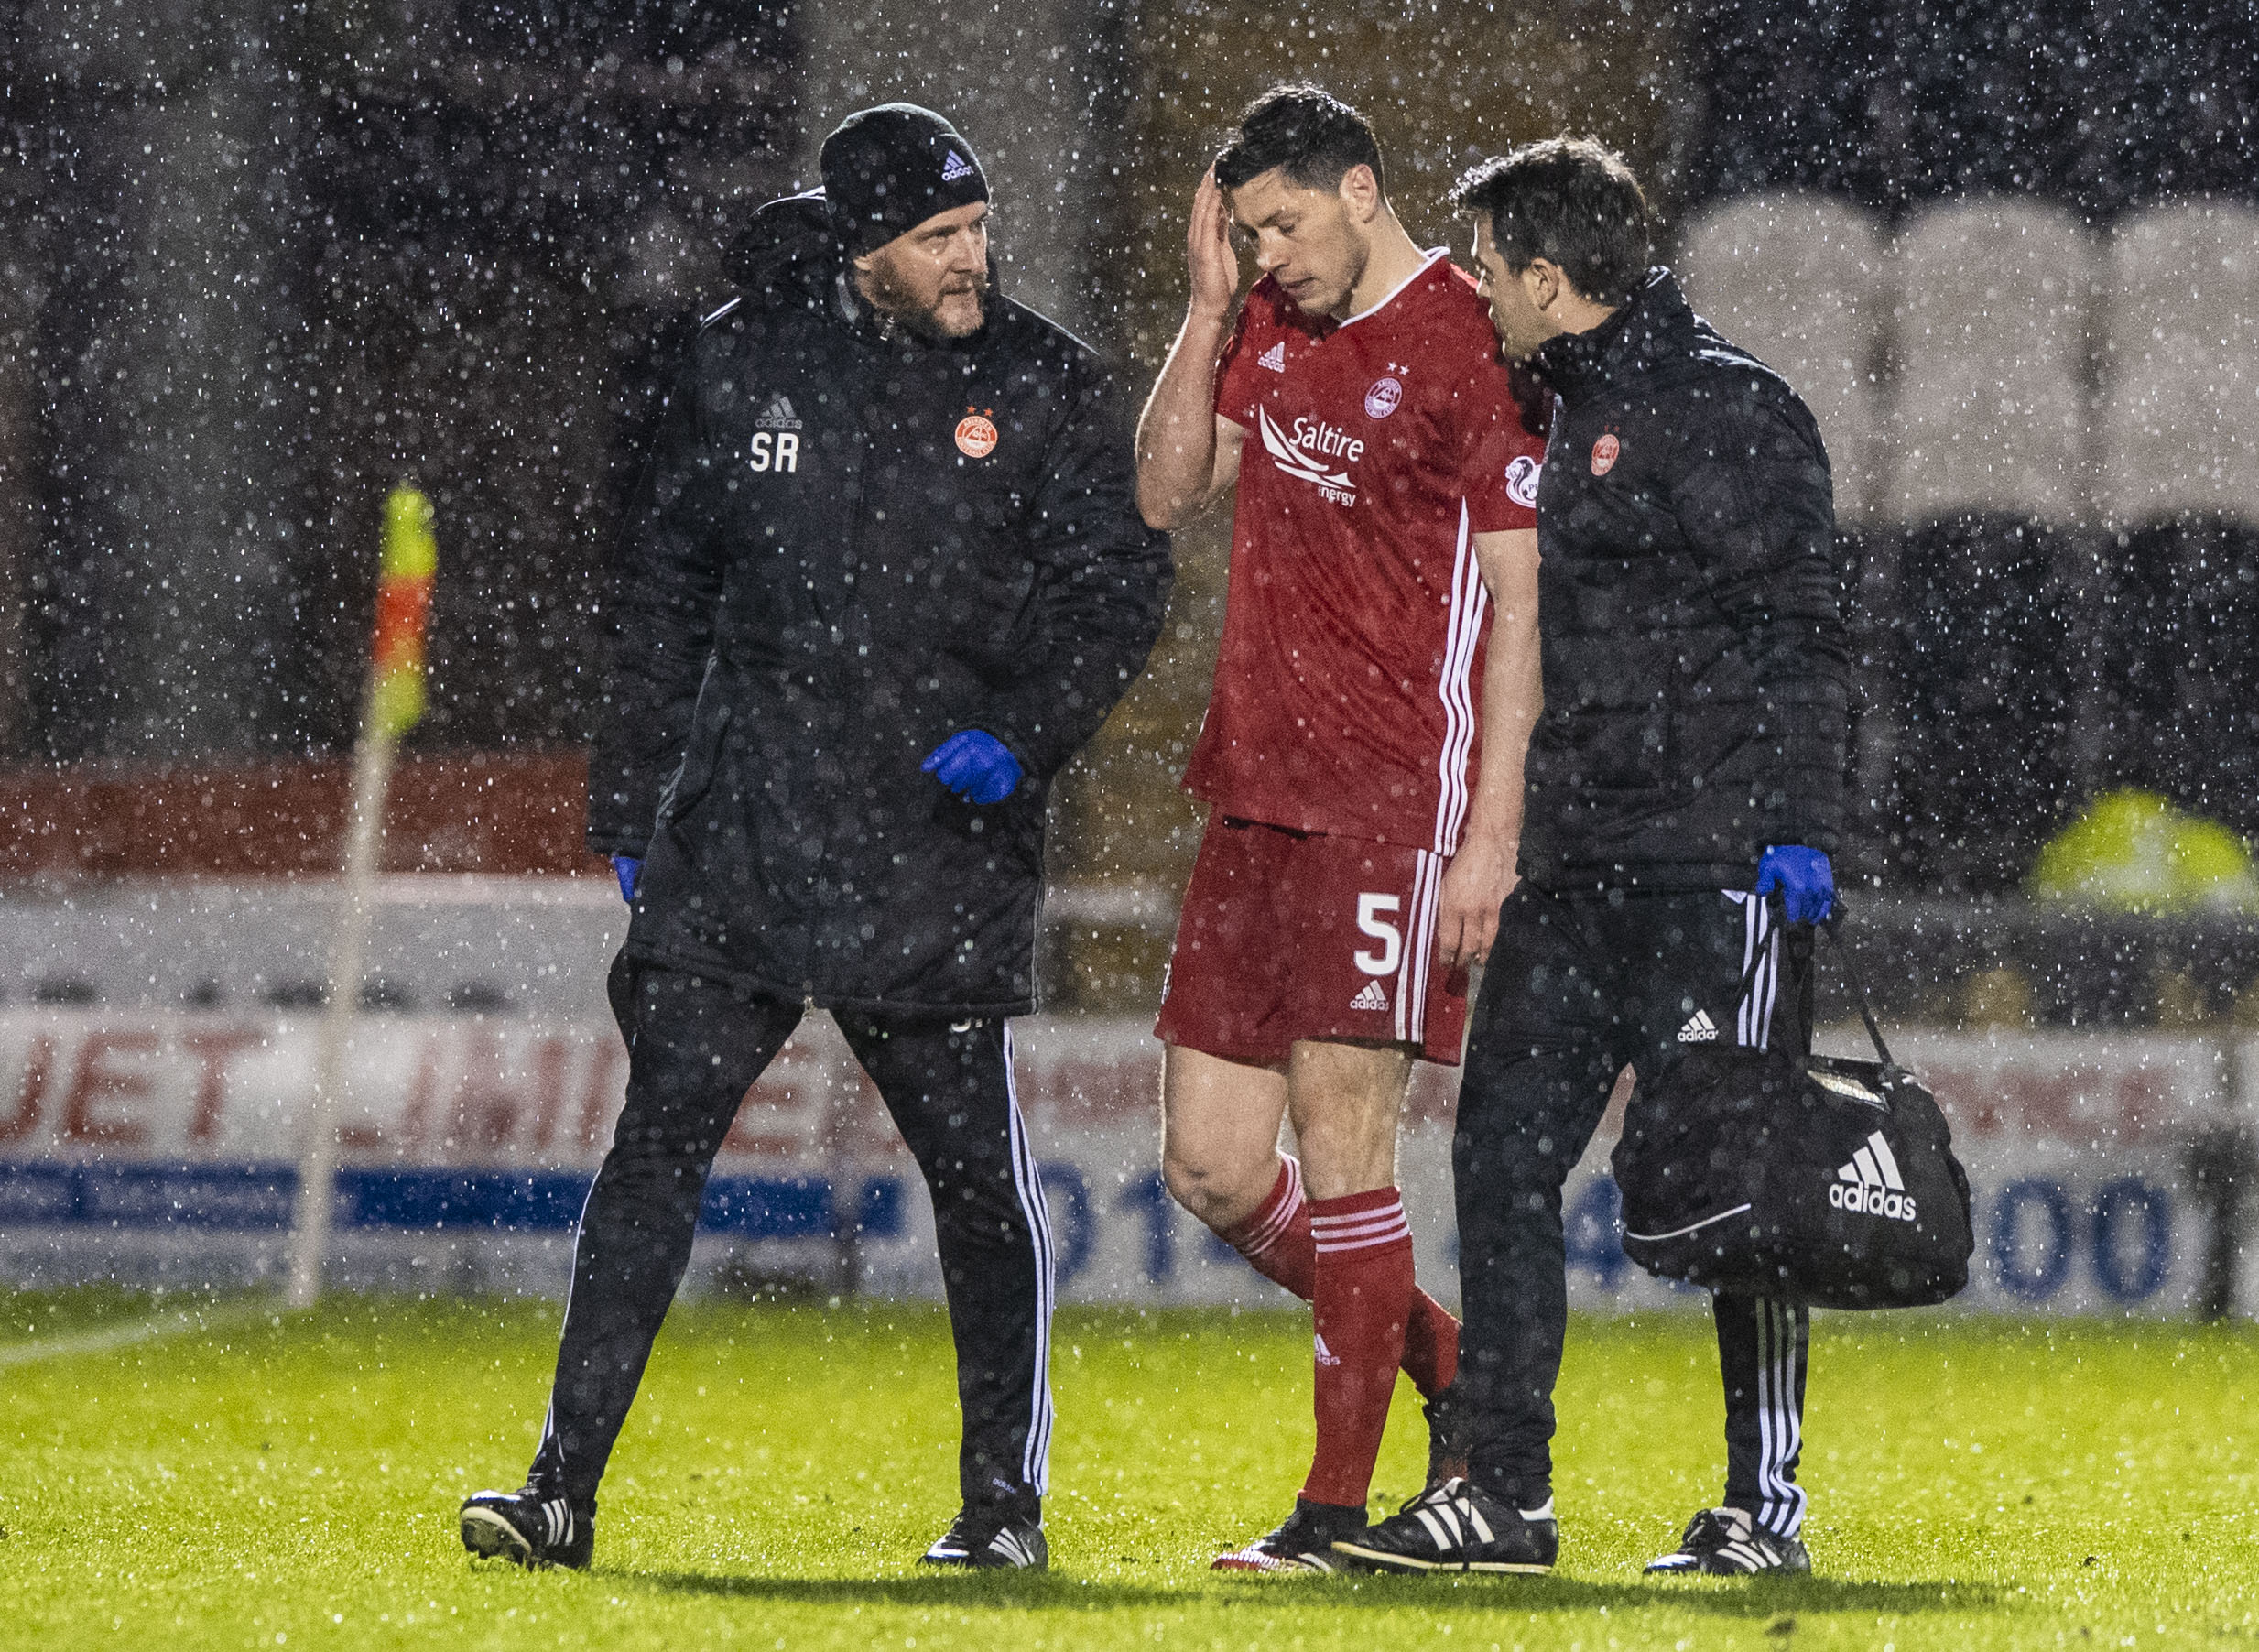 Scott McKenna is ready to train with the rest of the Dons squad.